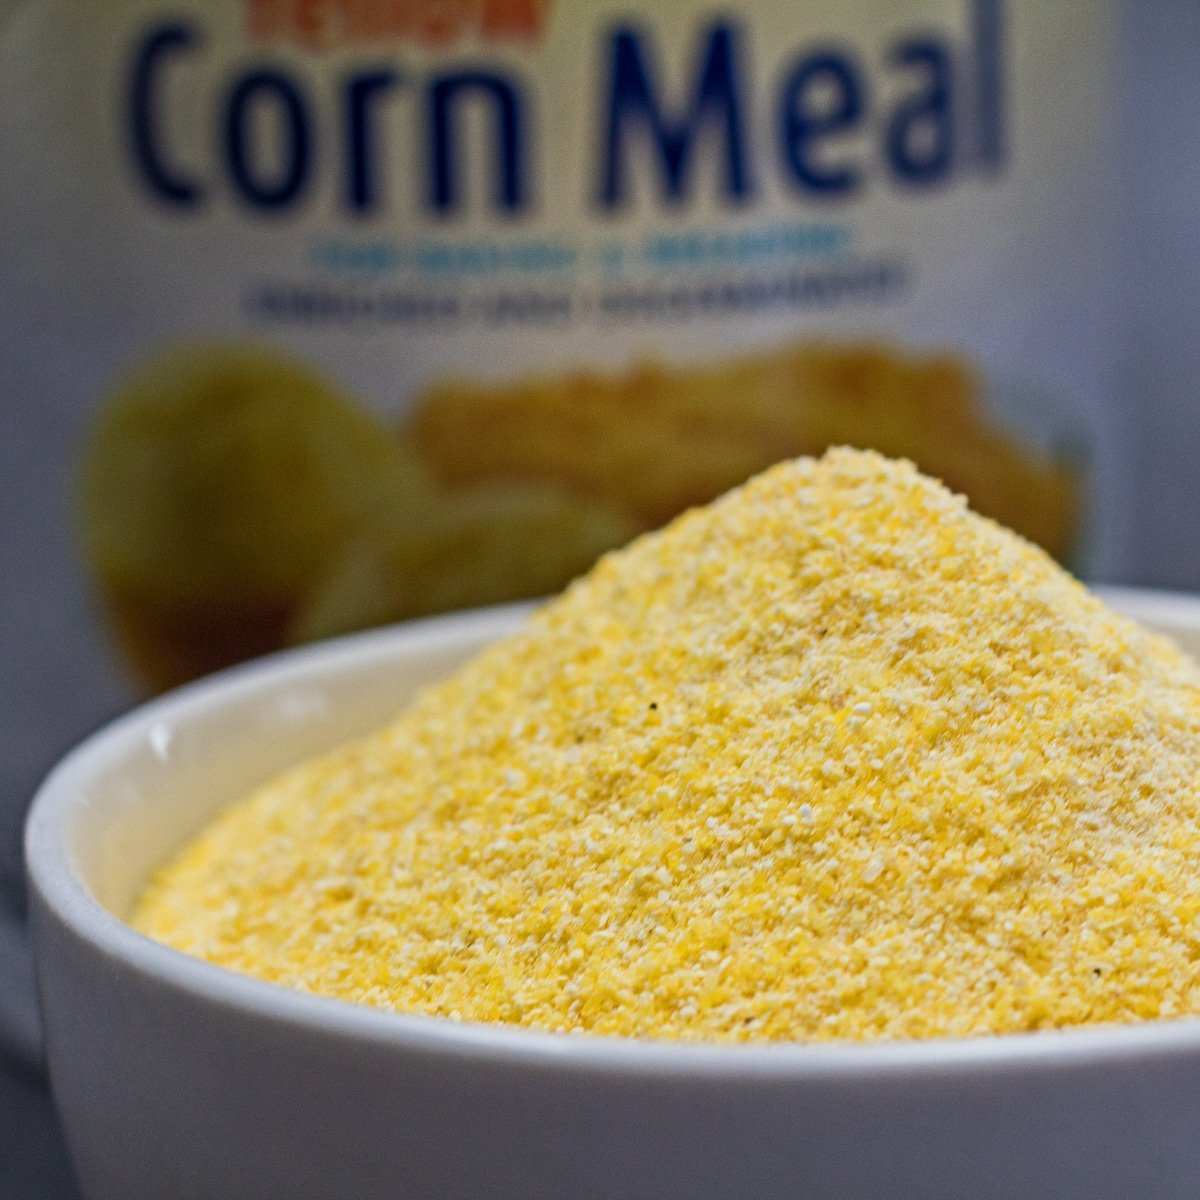 Large square image of yellow cornmeal in white bowl.